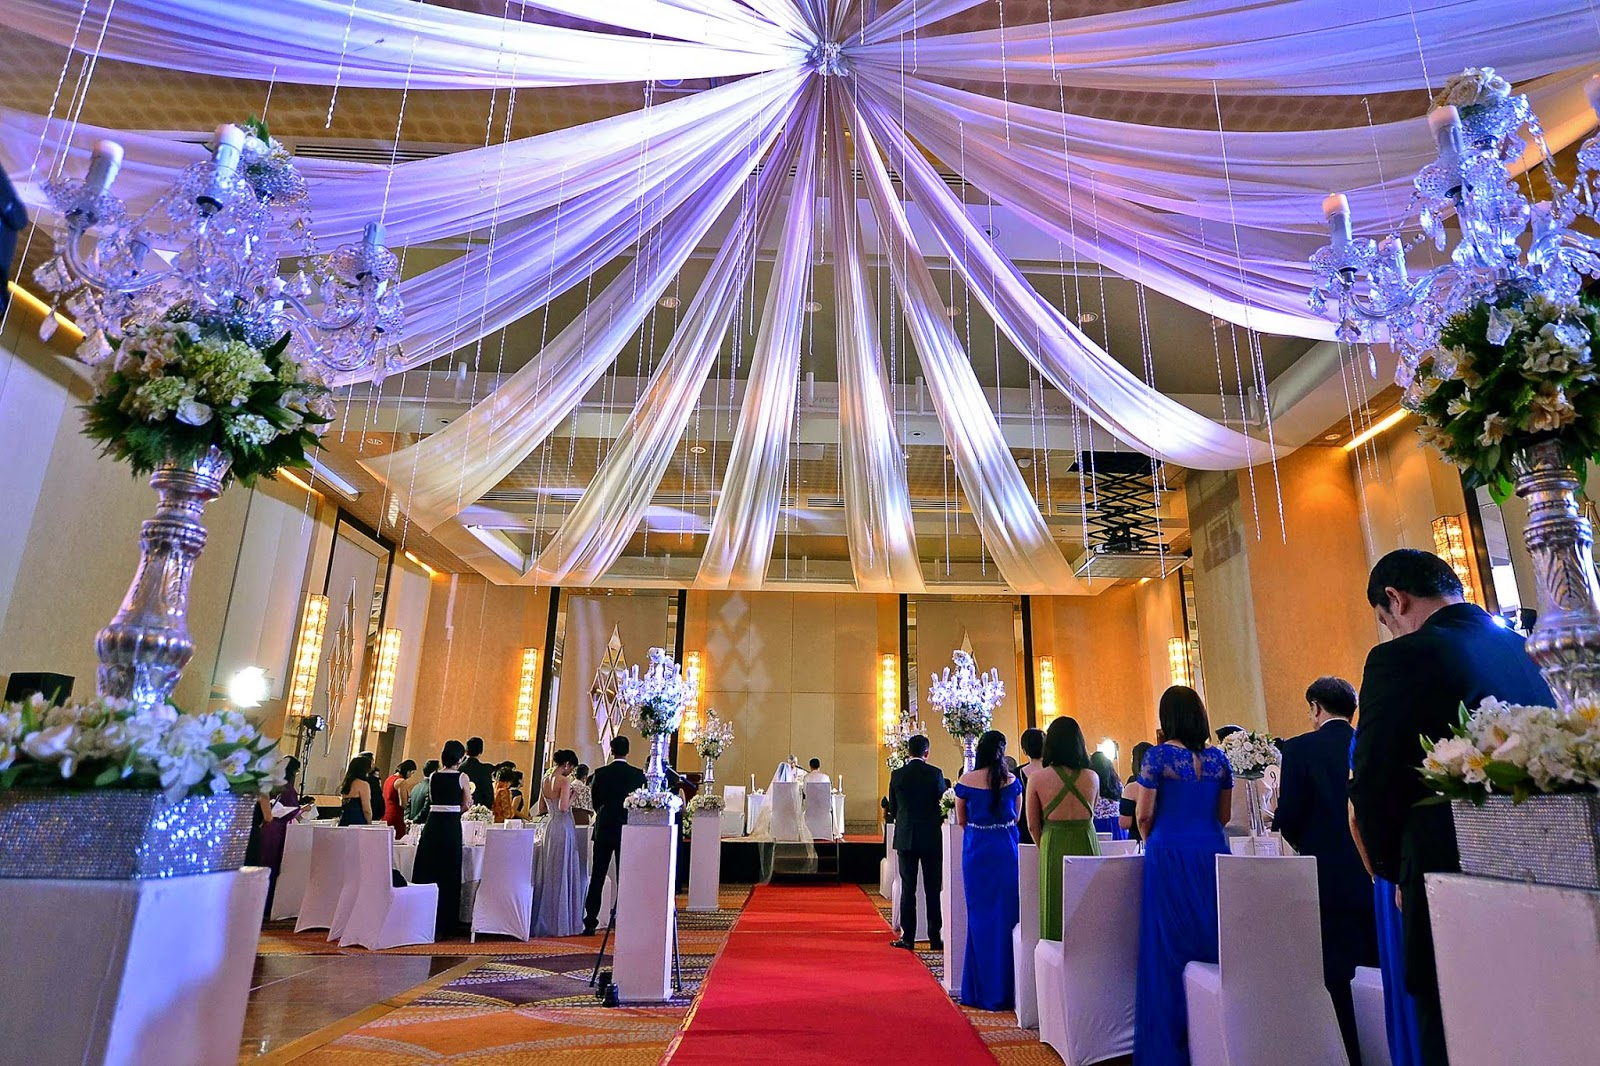 Makati City Wedding At Ballroom Of Raffles Fairmont Hotel Reception To Be Followed Hotels And Resort All Photos Are Taken By